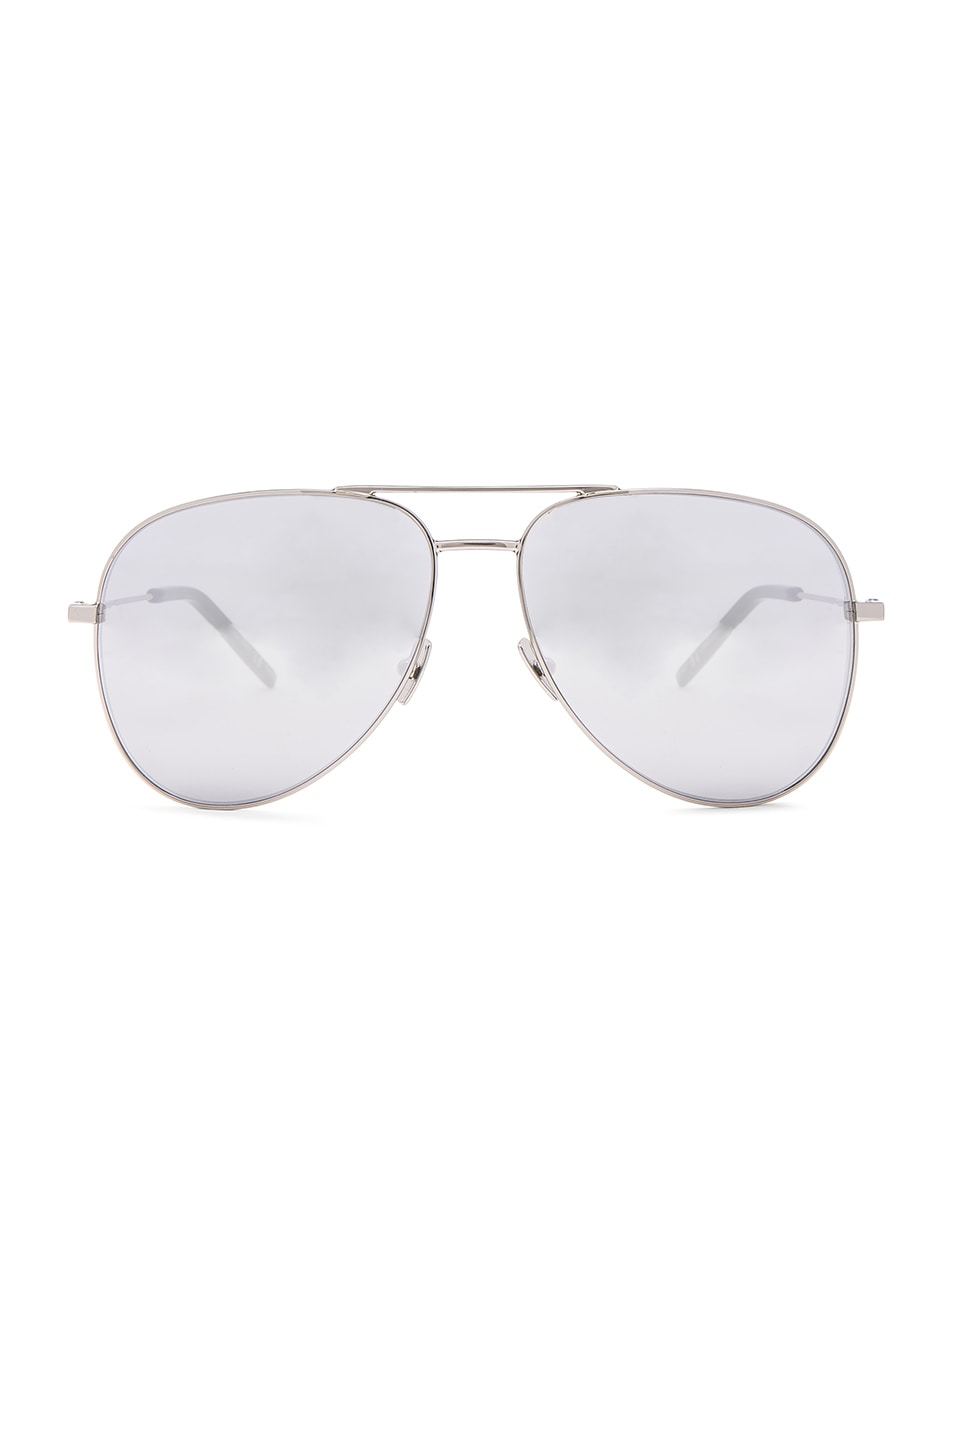 Image 1 of Saint Laurent Classic 11 Aviators in Silver Mirror